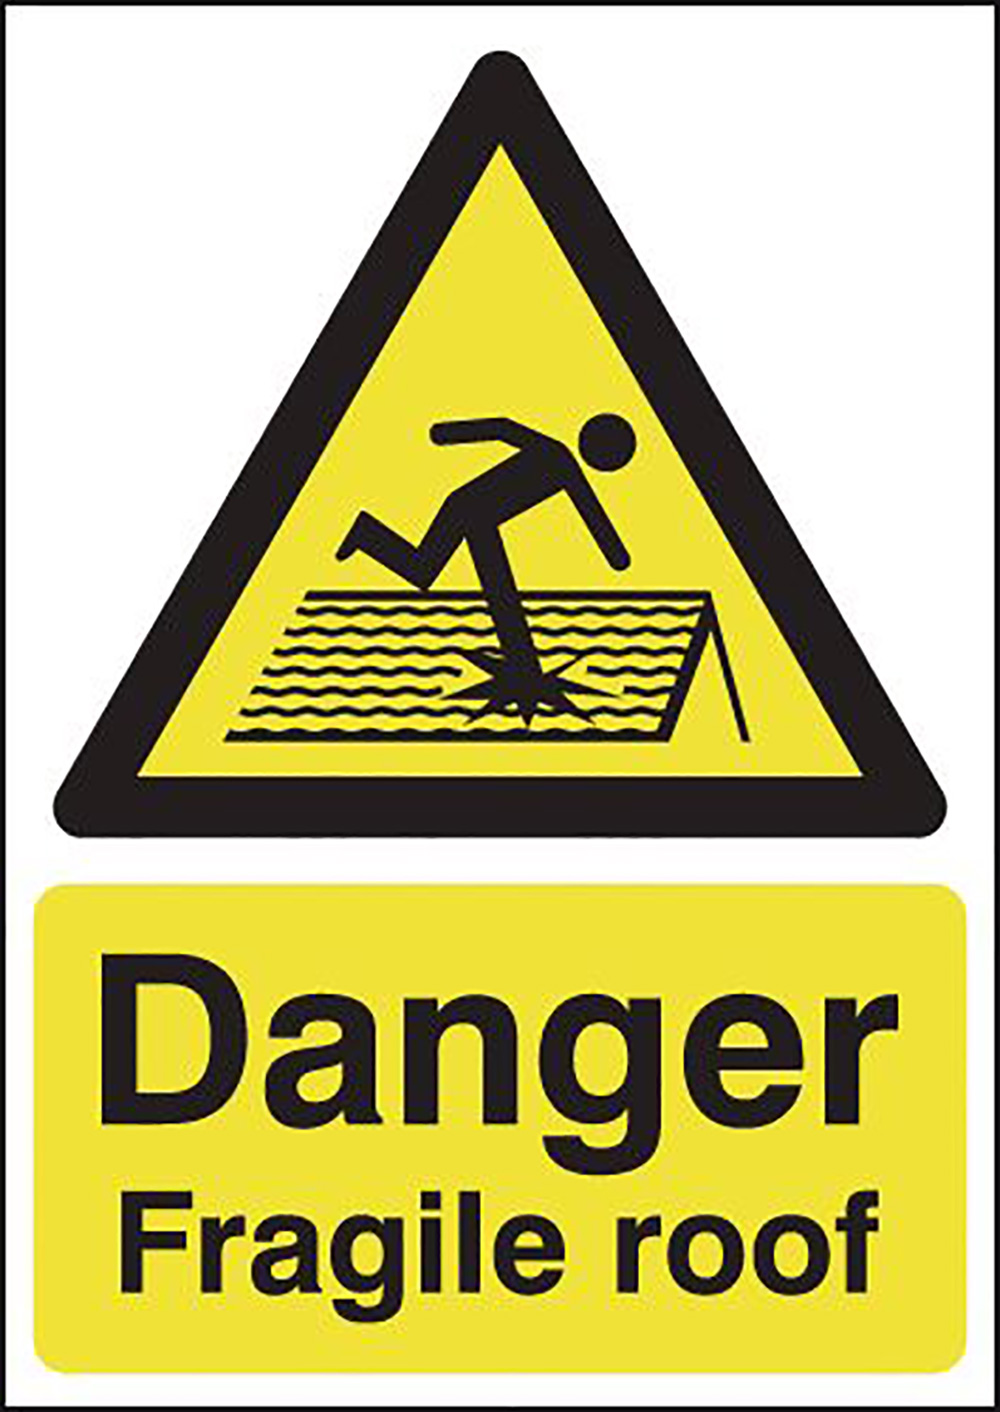 Danger Fragile Roof 594x420mm Self Adhesive Vinyl Safety Sign